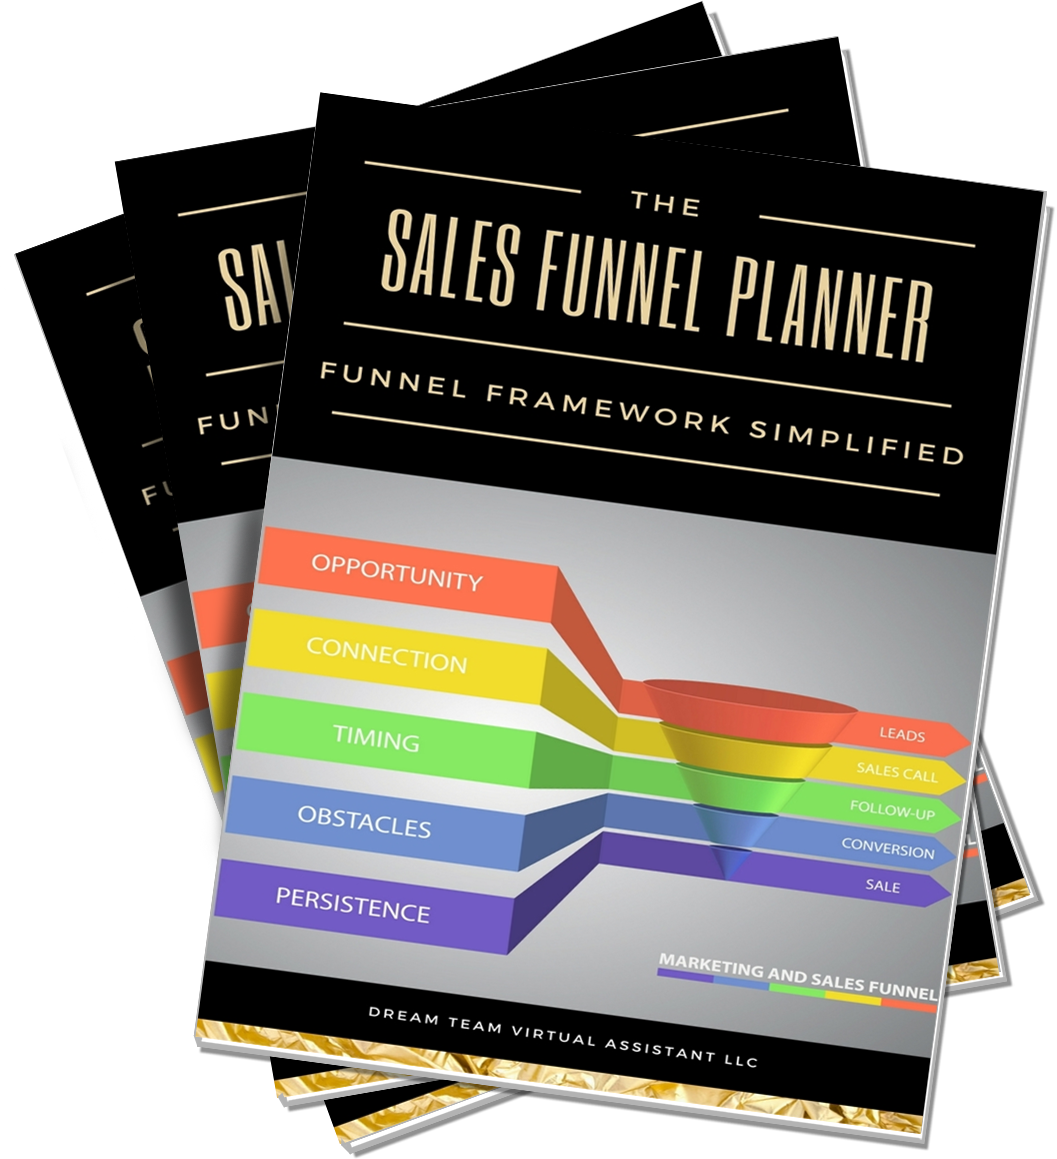 Sales Funnel Planner - This comprehensive 22 page planner will spell out exactly how to set up an effective, converting sales funnel for your products. We've included handy worksheets to help you figure out your goals and objectives and get you well on your way to making the income of your dreams!